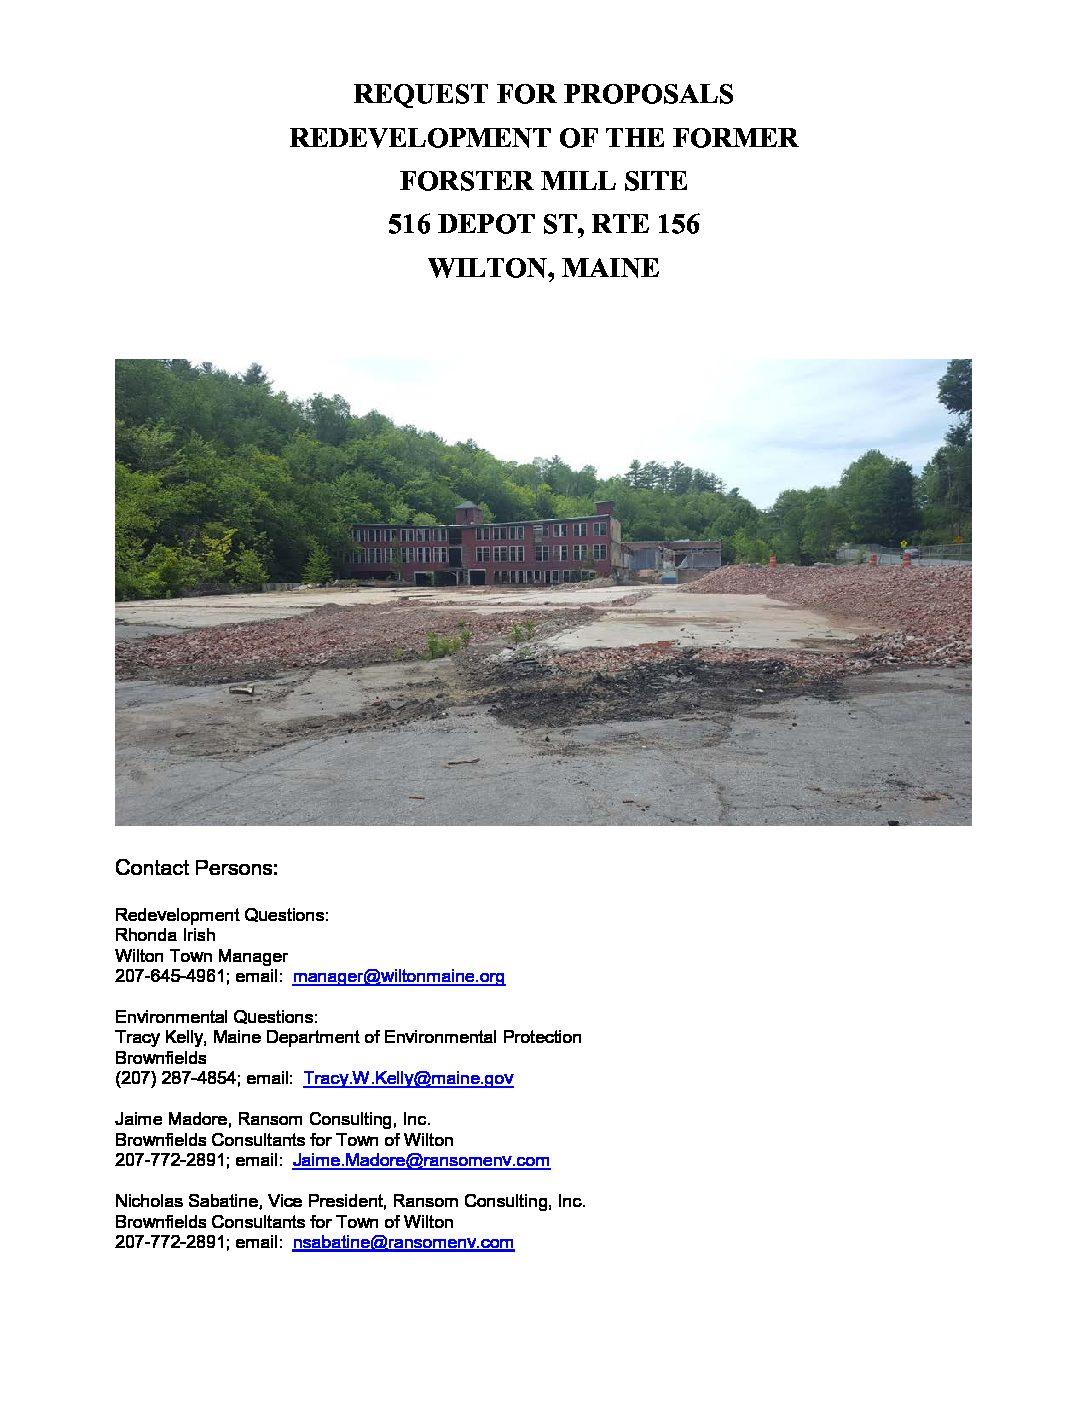 Wilton Former Forster Mill Site RFP Aug 2018 - Town of